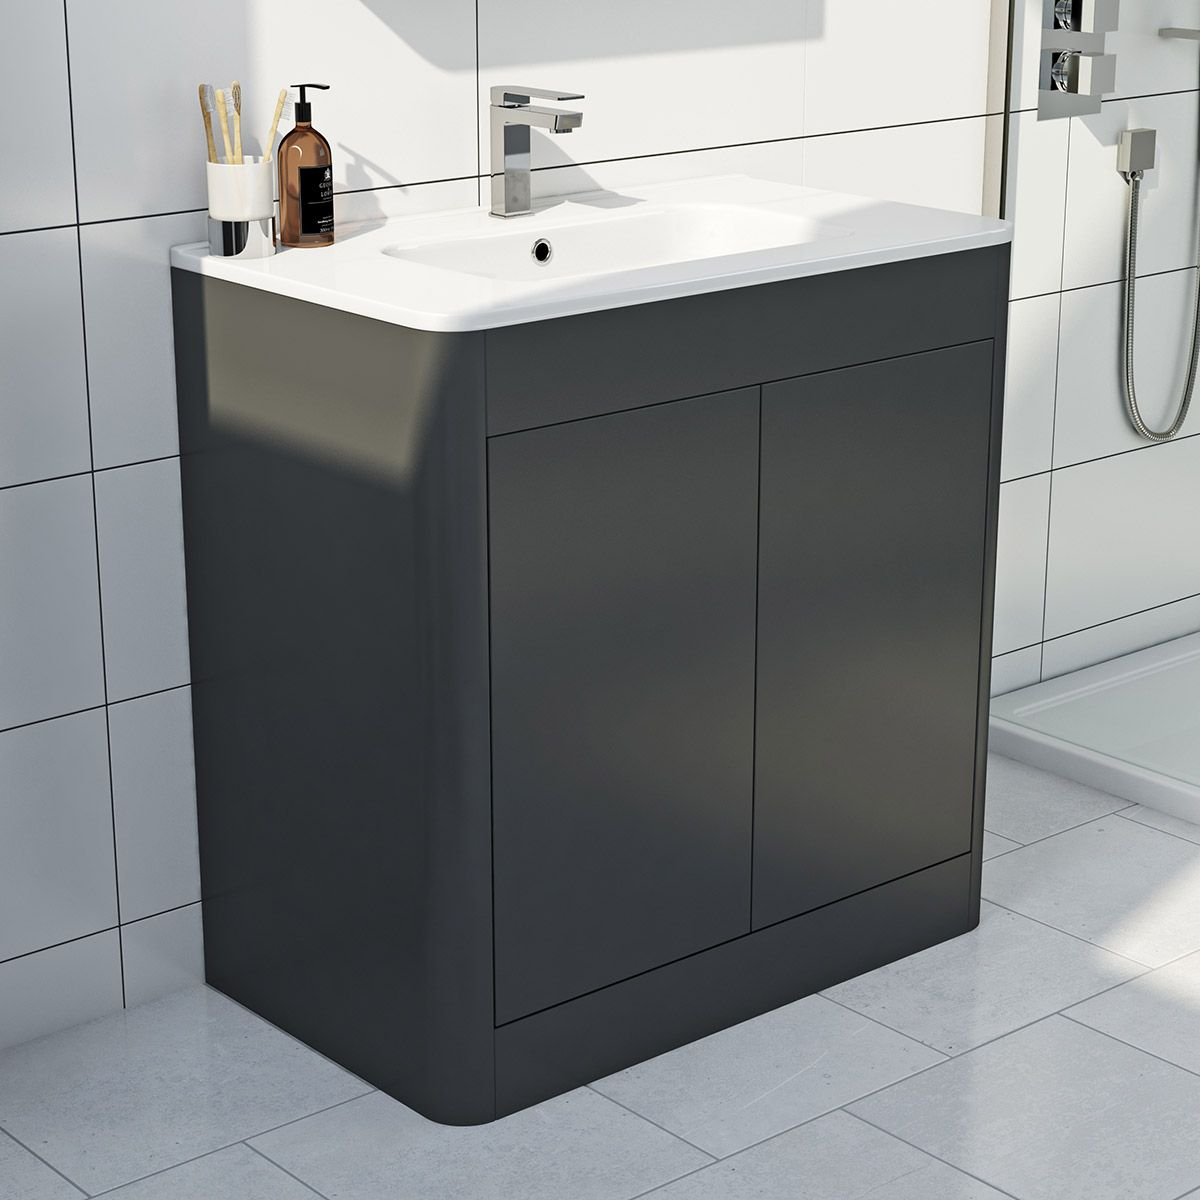 Great Mode Carter Pebble Grey Floor Mounted Vanity Unit And Basin 800mm